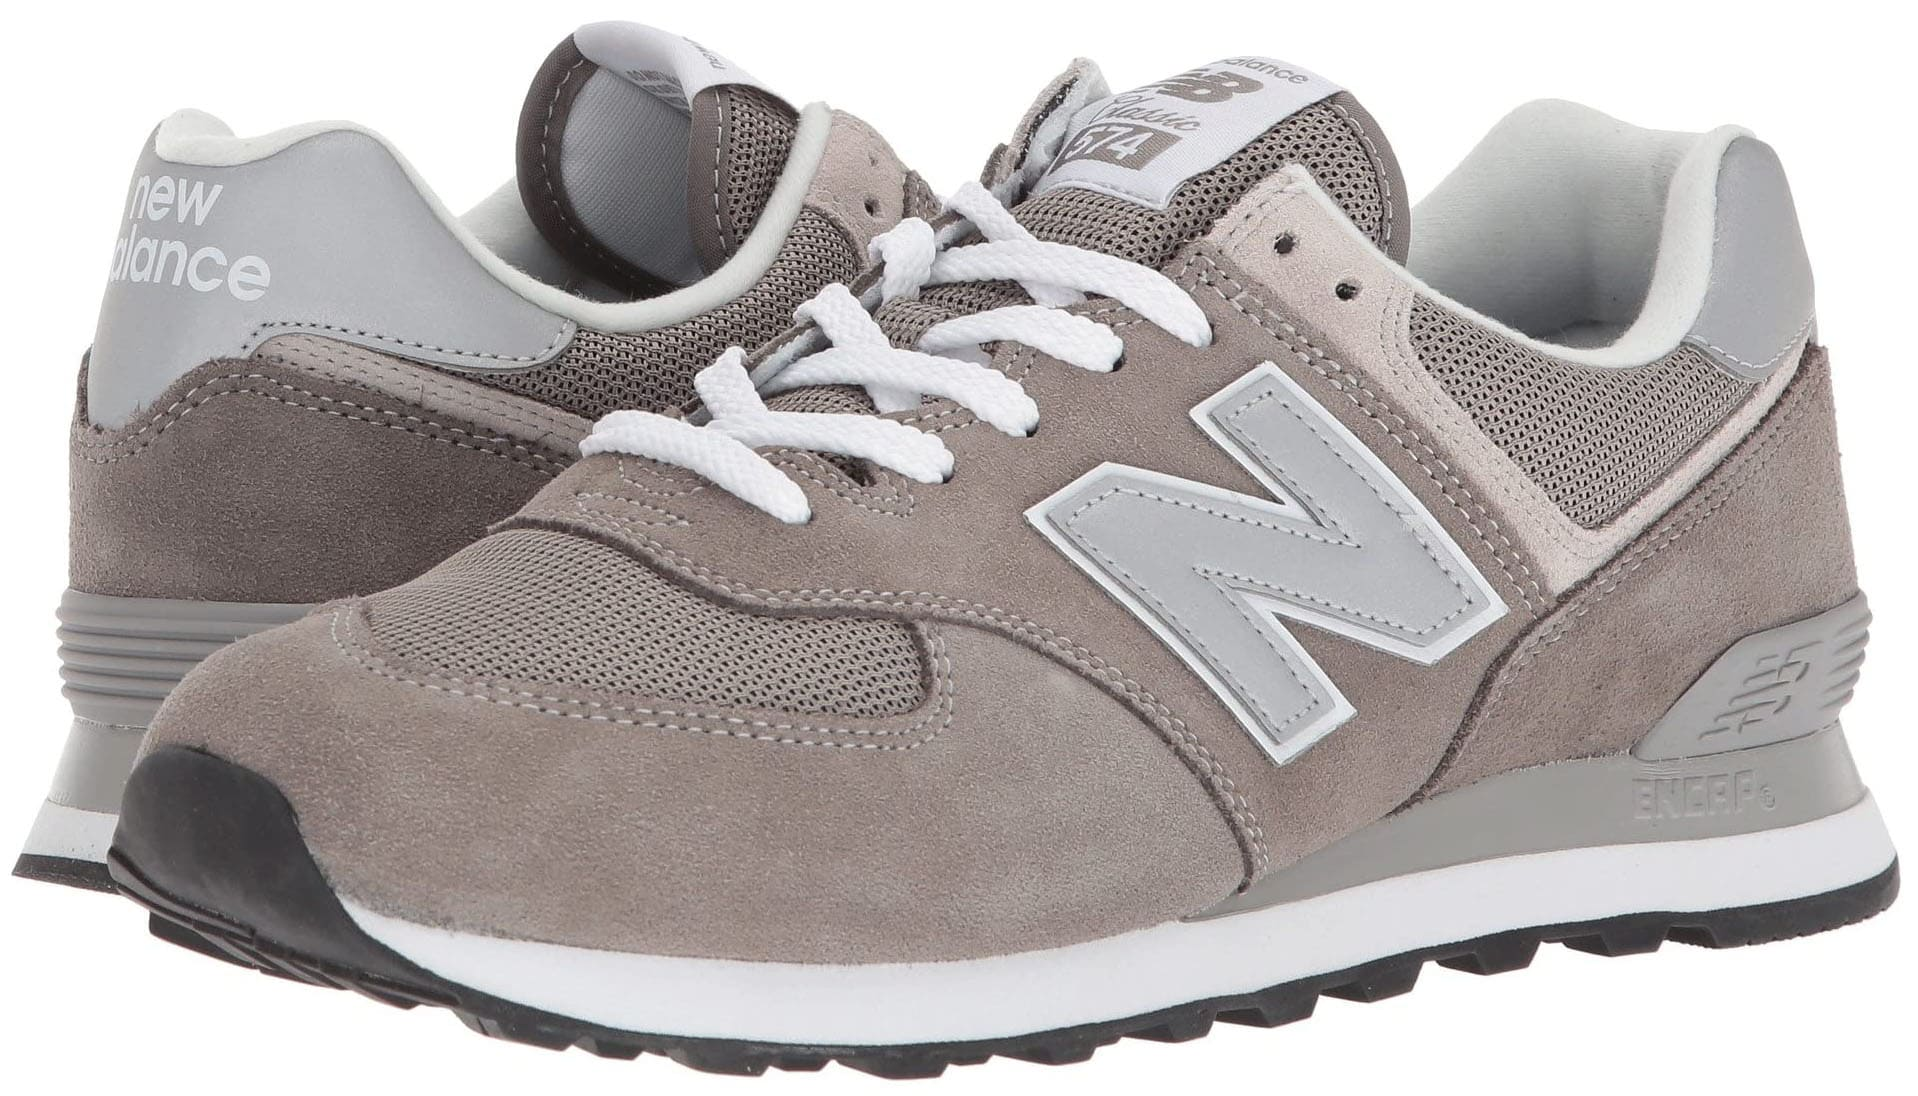 A vintage casual-runner shoe featuring New Balance's iconic 574 silhouette in suede and mesh upper